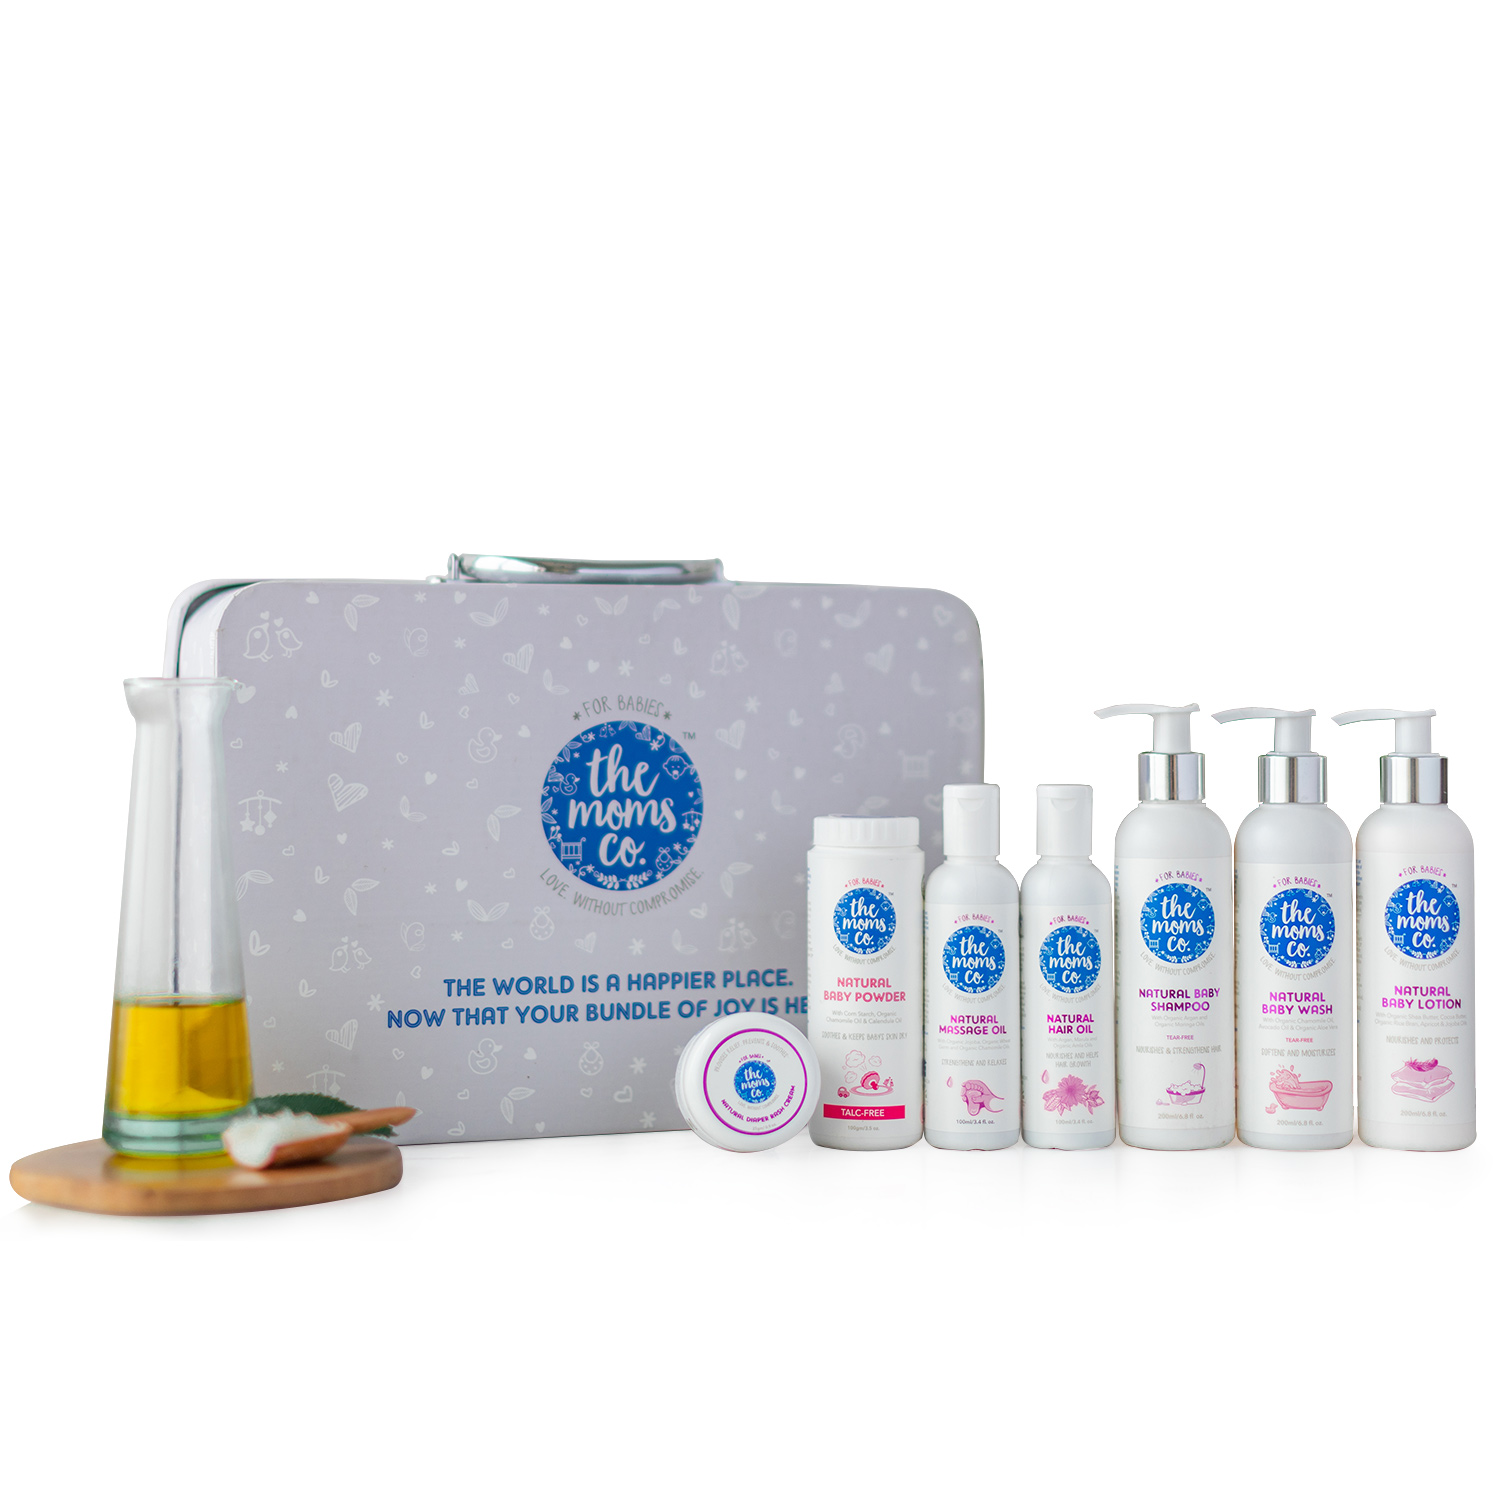 The Moms Co. Everything For Baby Suitcase Gift Box with Lotion (200 ml), Hair oil (100 ml), Massage oil (100 ml), Shampoo (200 ml), Body Wash (200 ml), Diaper rash (25 gm) and Powder (100 gm)